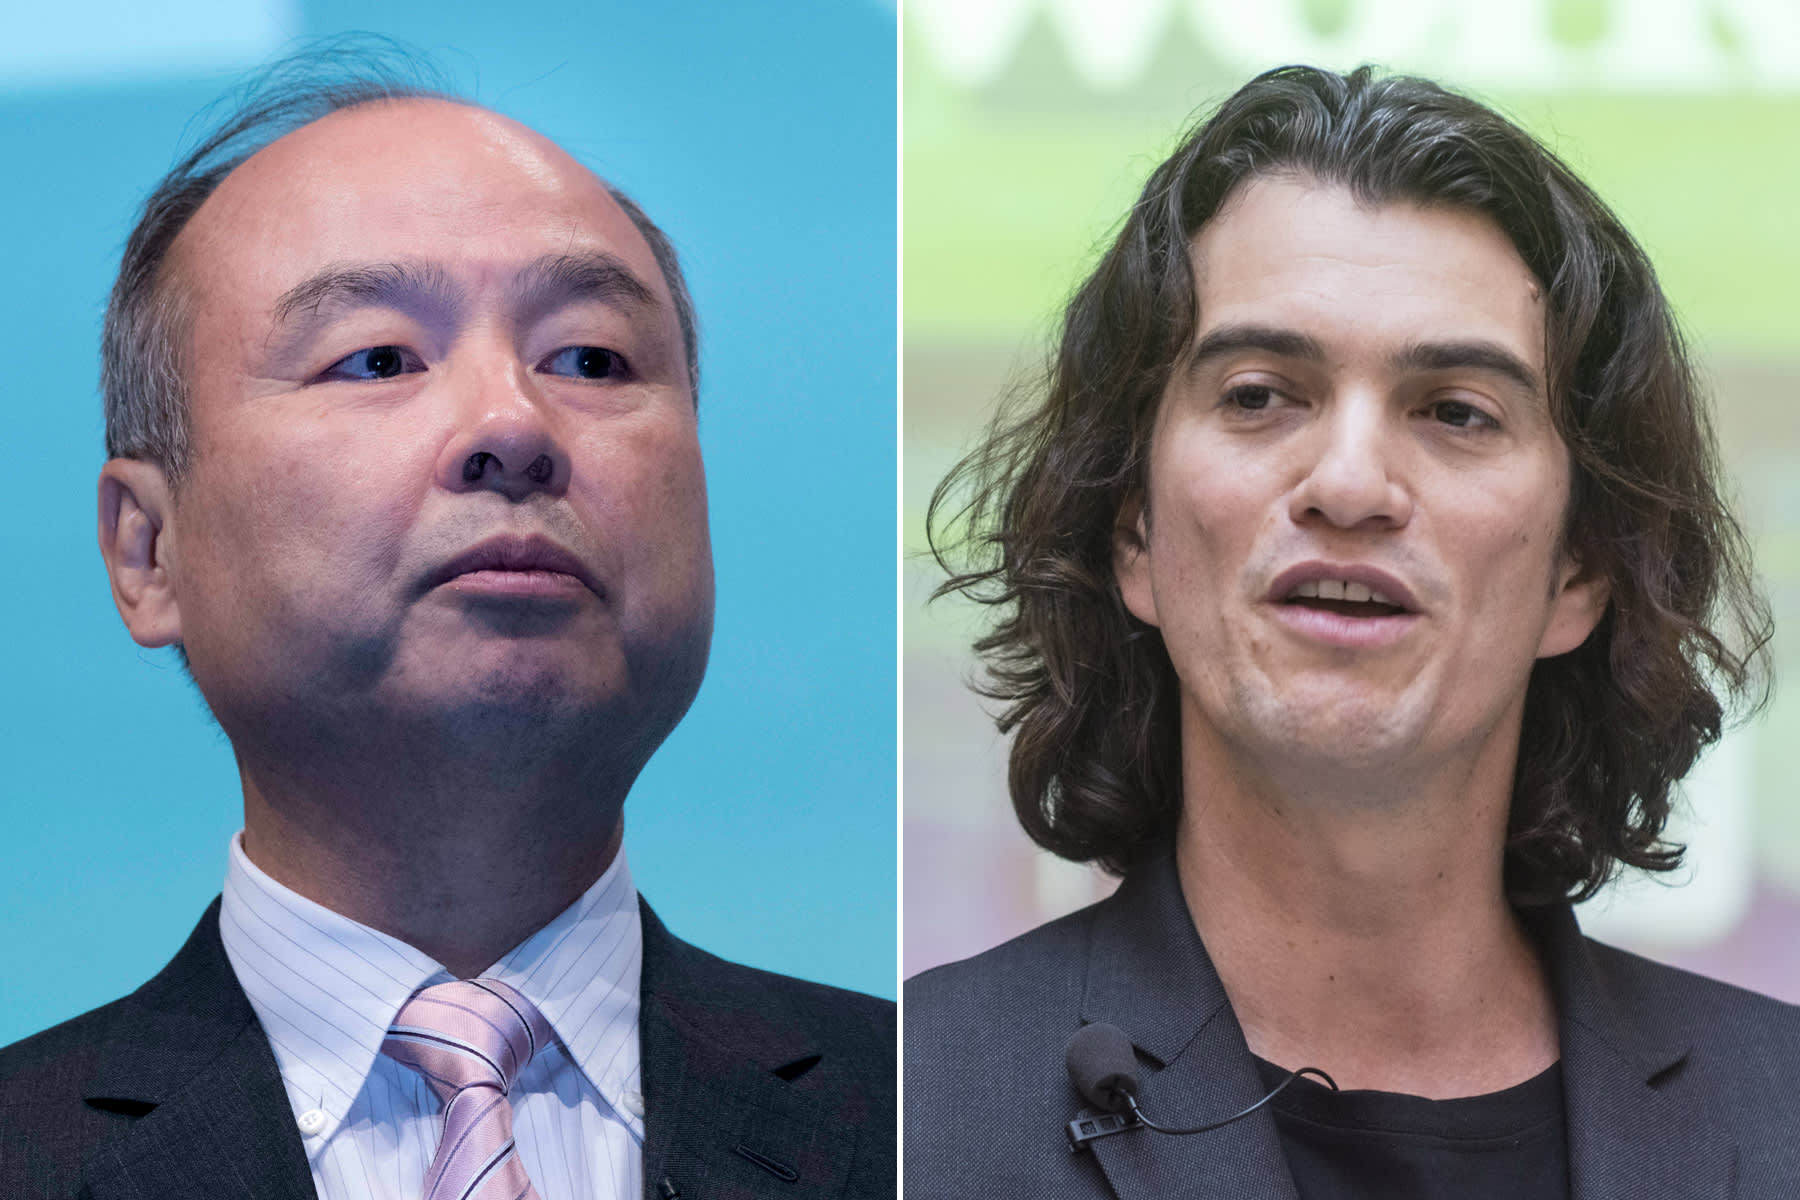 SoftBank is reportedly seeking to take control of WeWork through a financing package